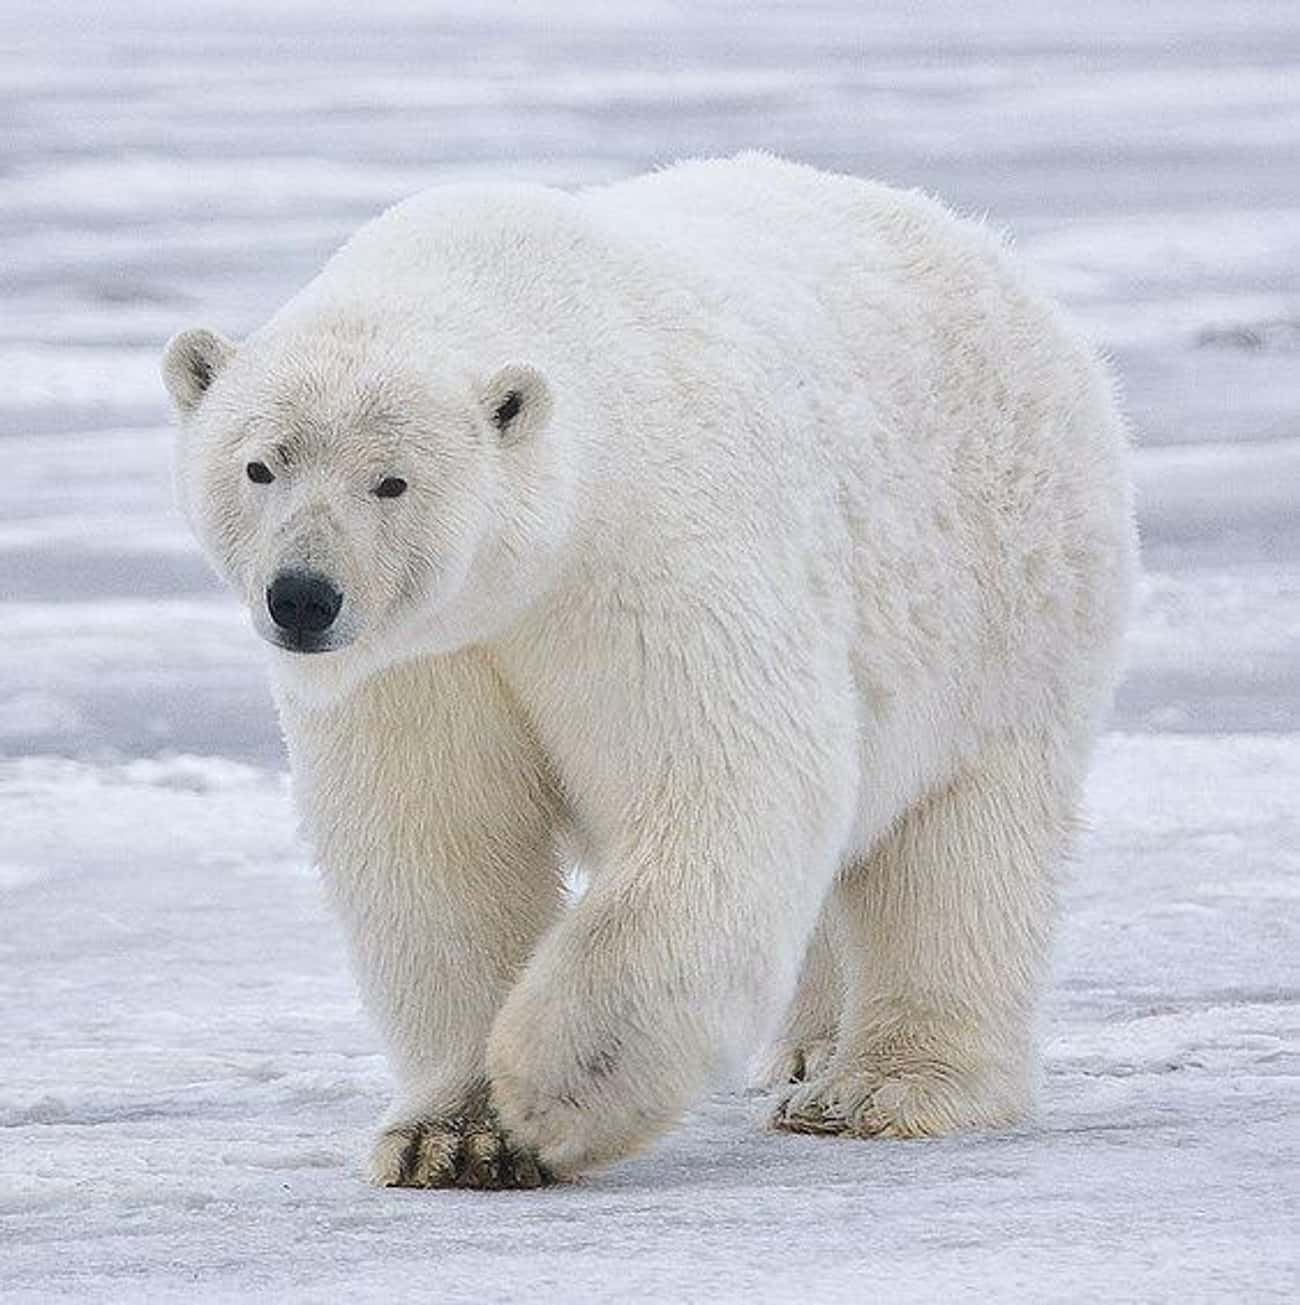 The Arctic Polar Bear Has Evol is listed (or ranked) 4 on the list 10 Creatures That Are Nature's Most Efficient Killers